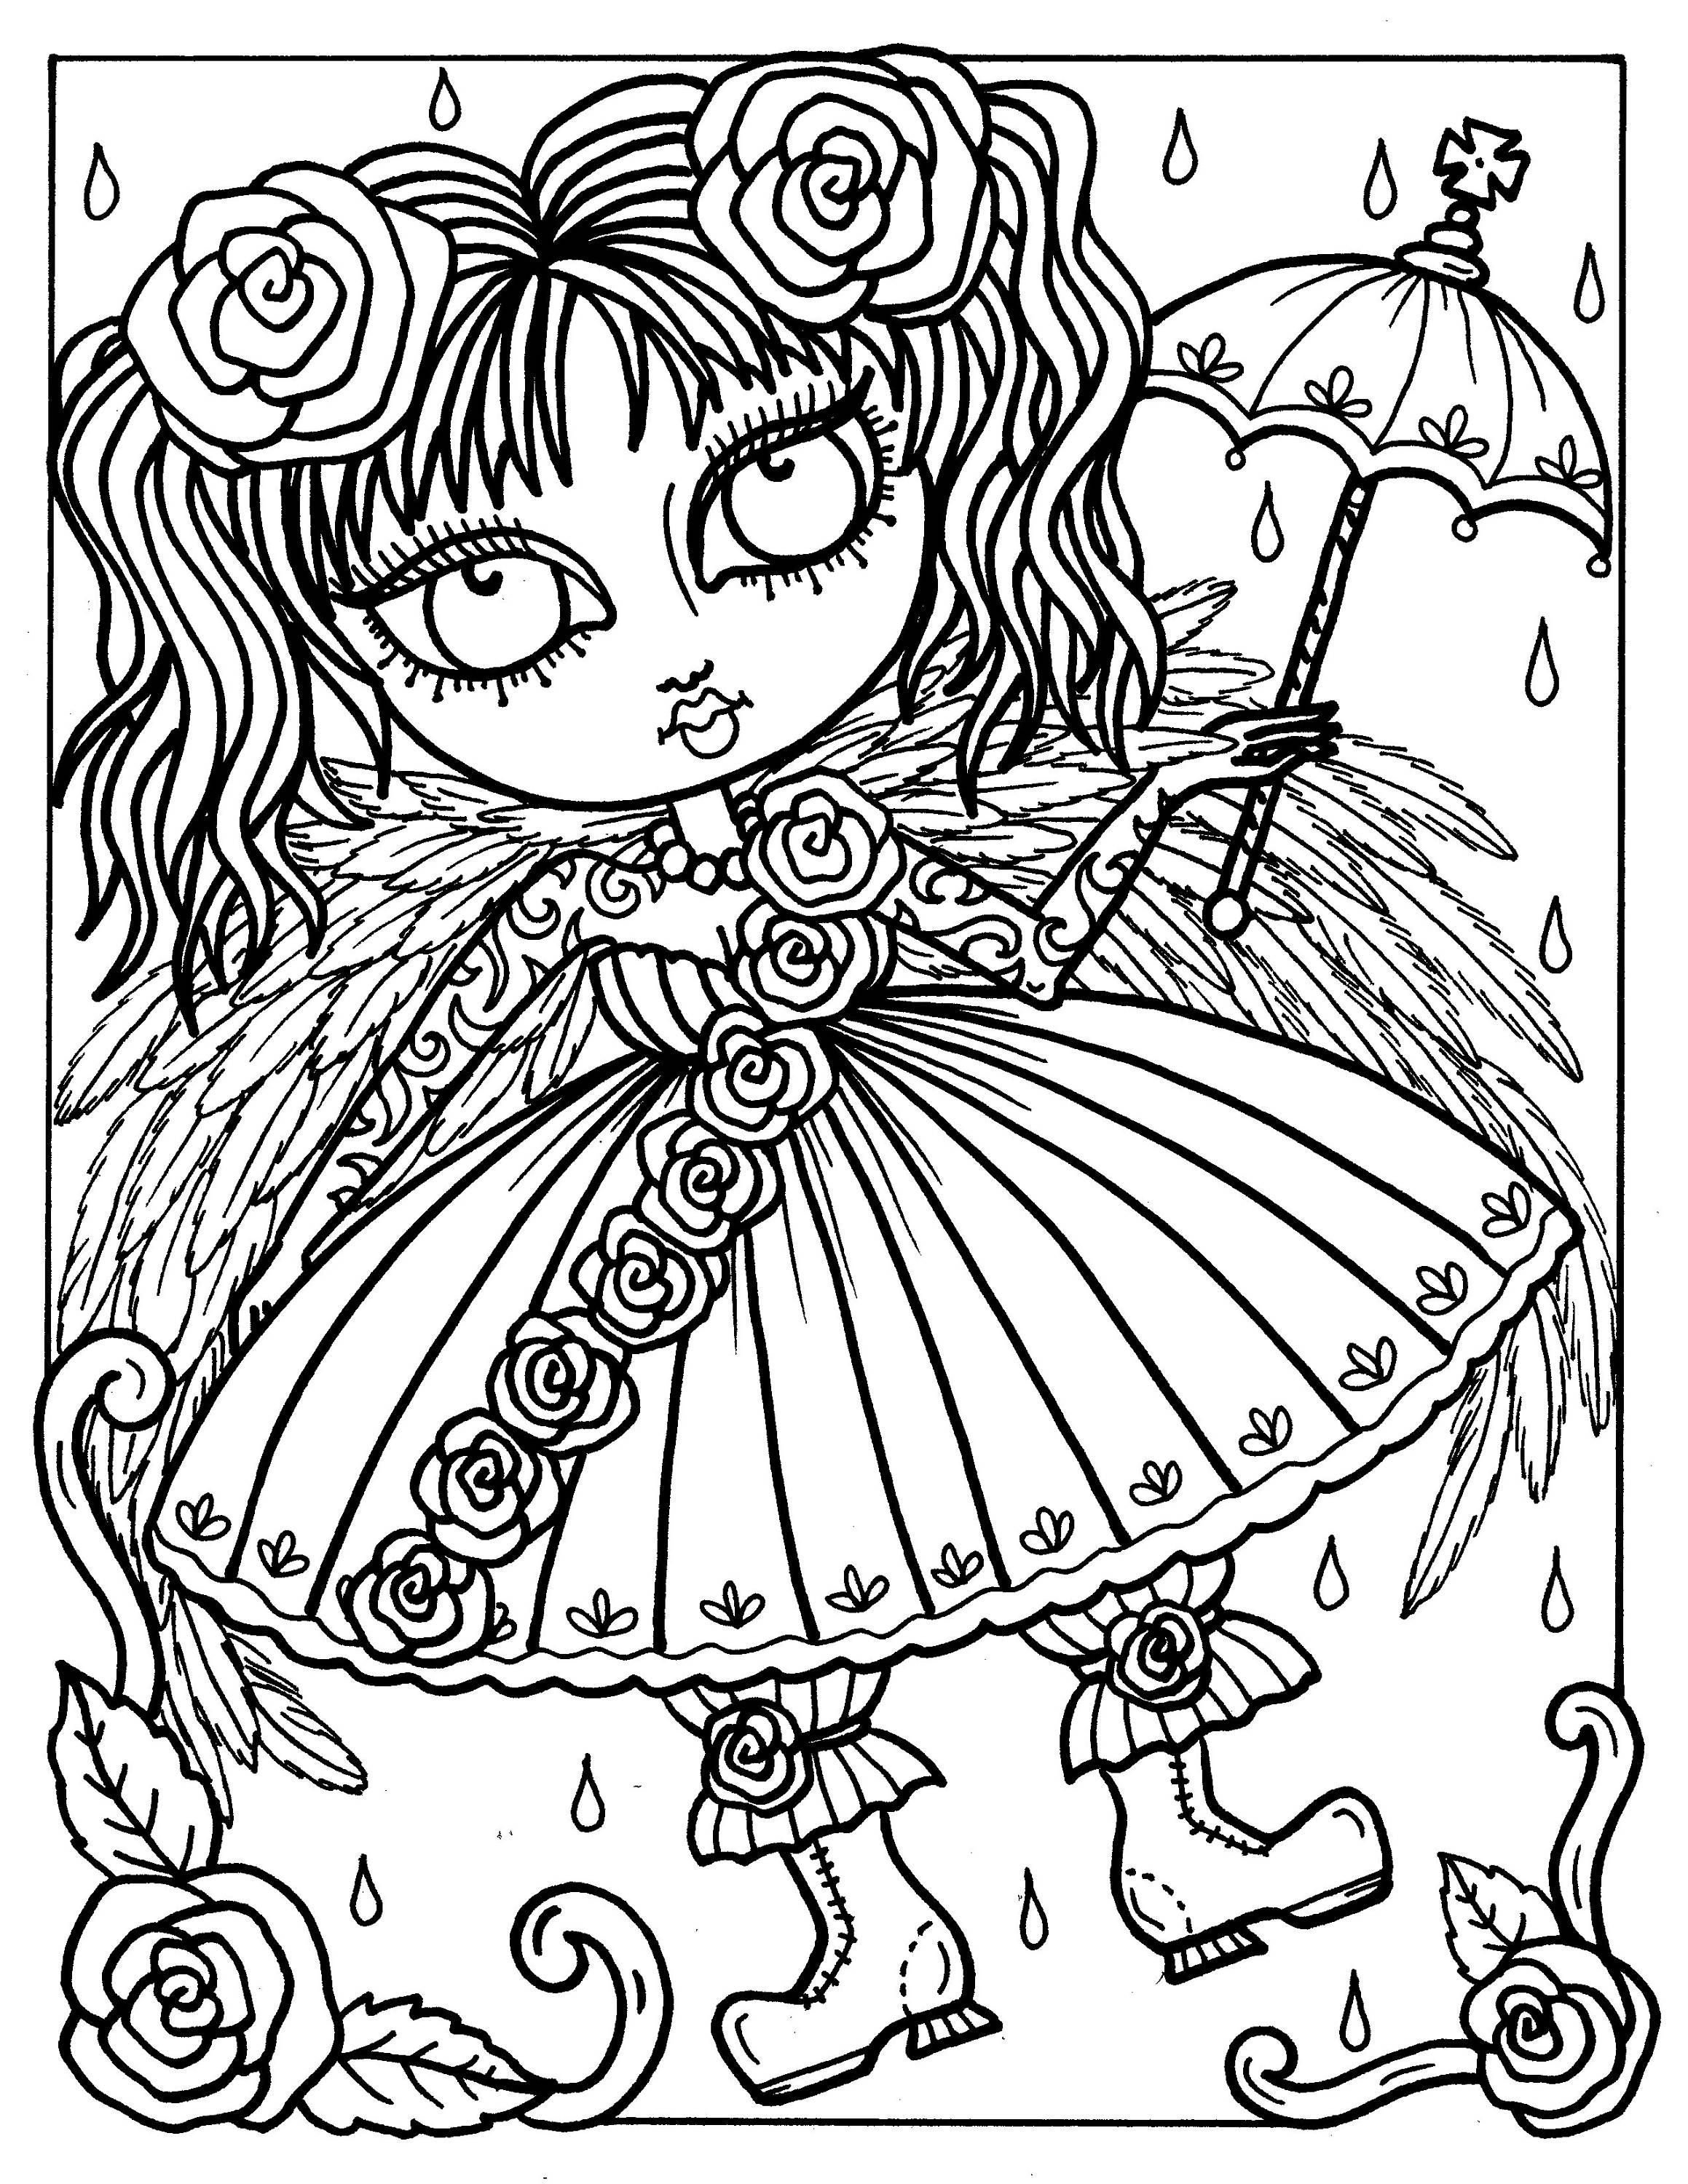 Digital Book Gothic Angels Instant Download Coloring Book Etsy Angel Coloring Pages Fairy Coloring Pages Gothic Angel